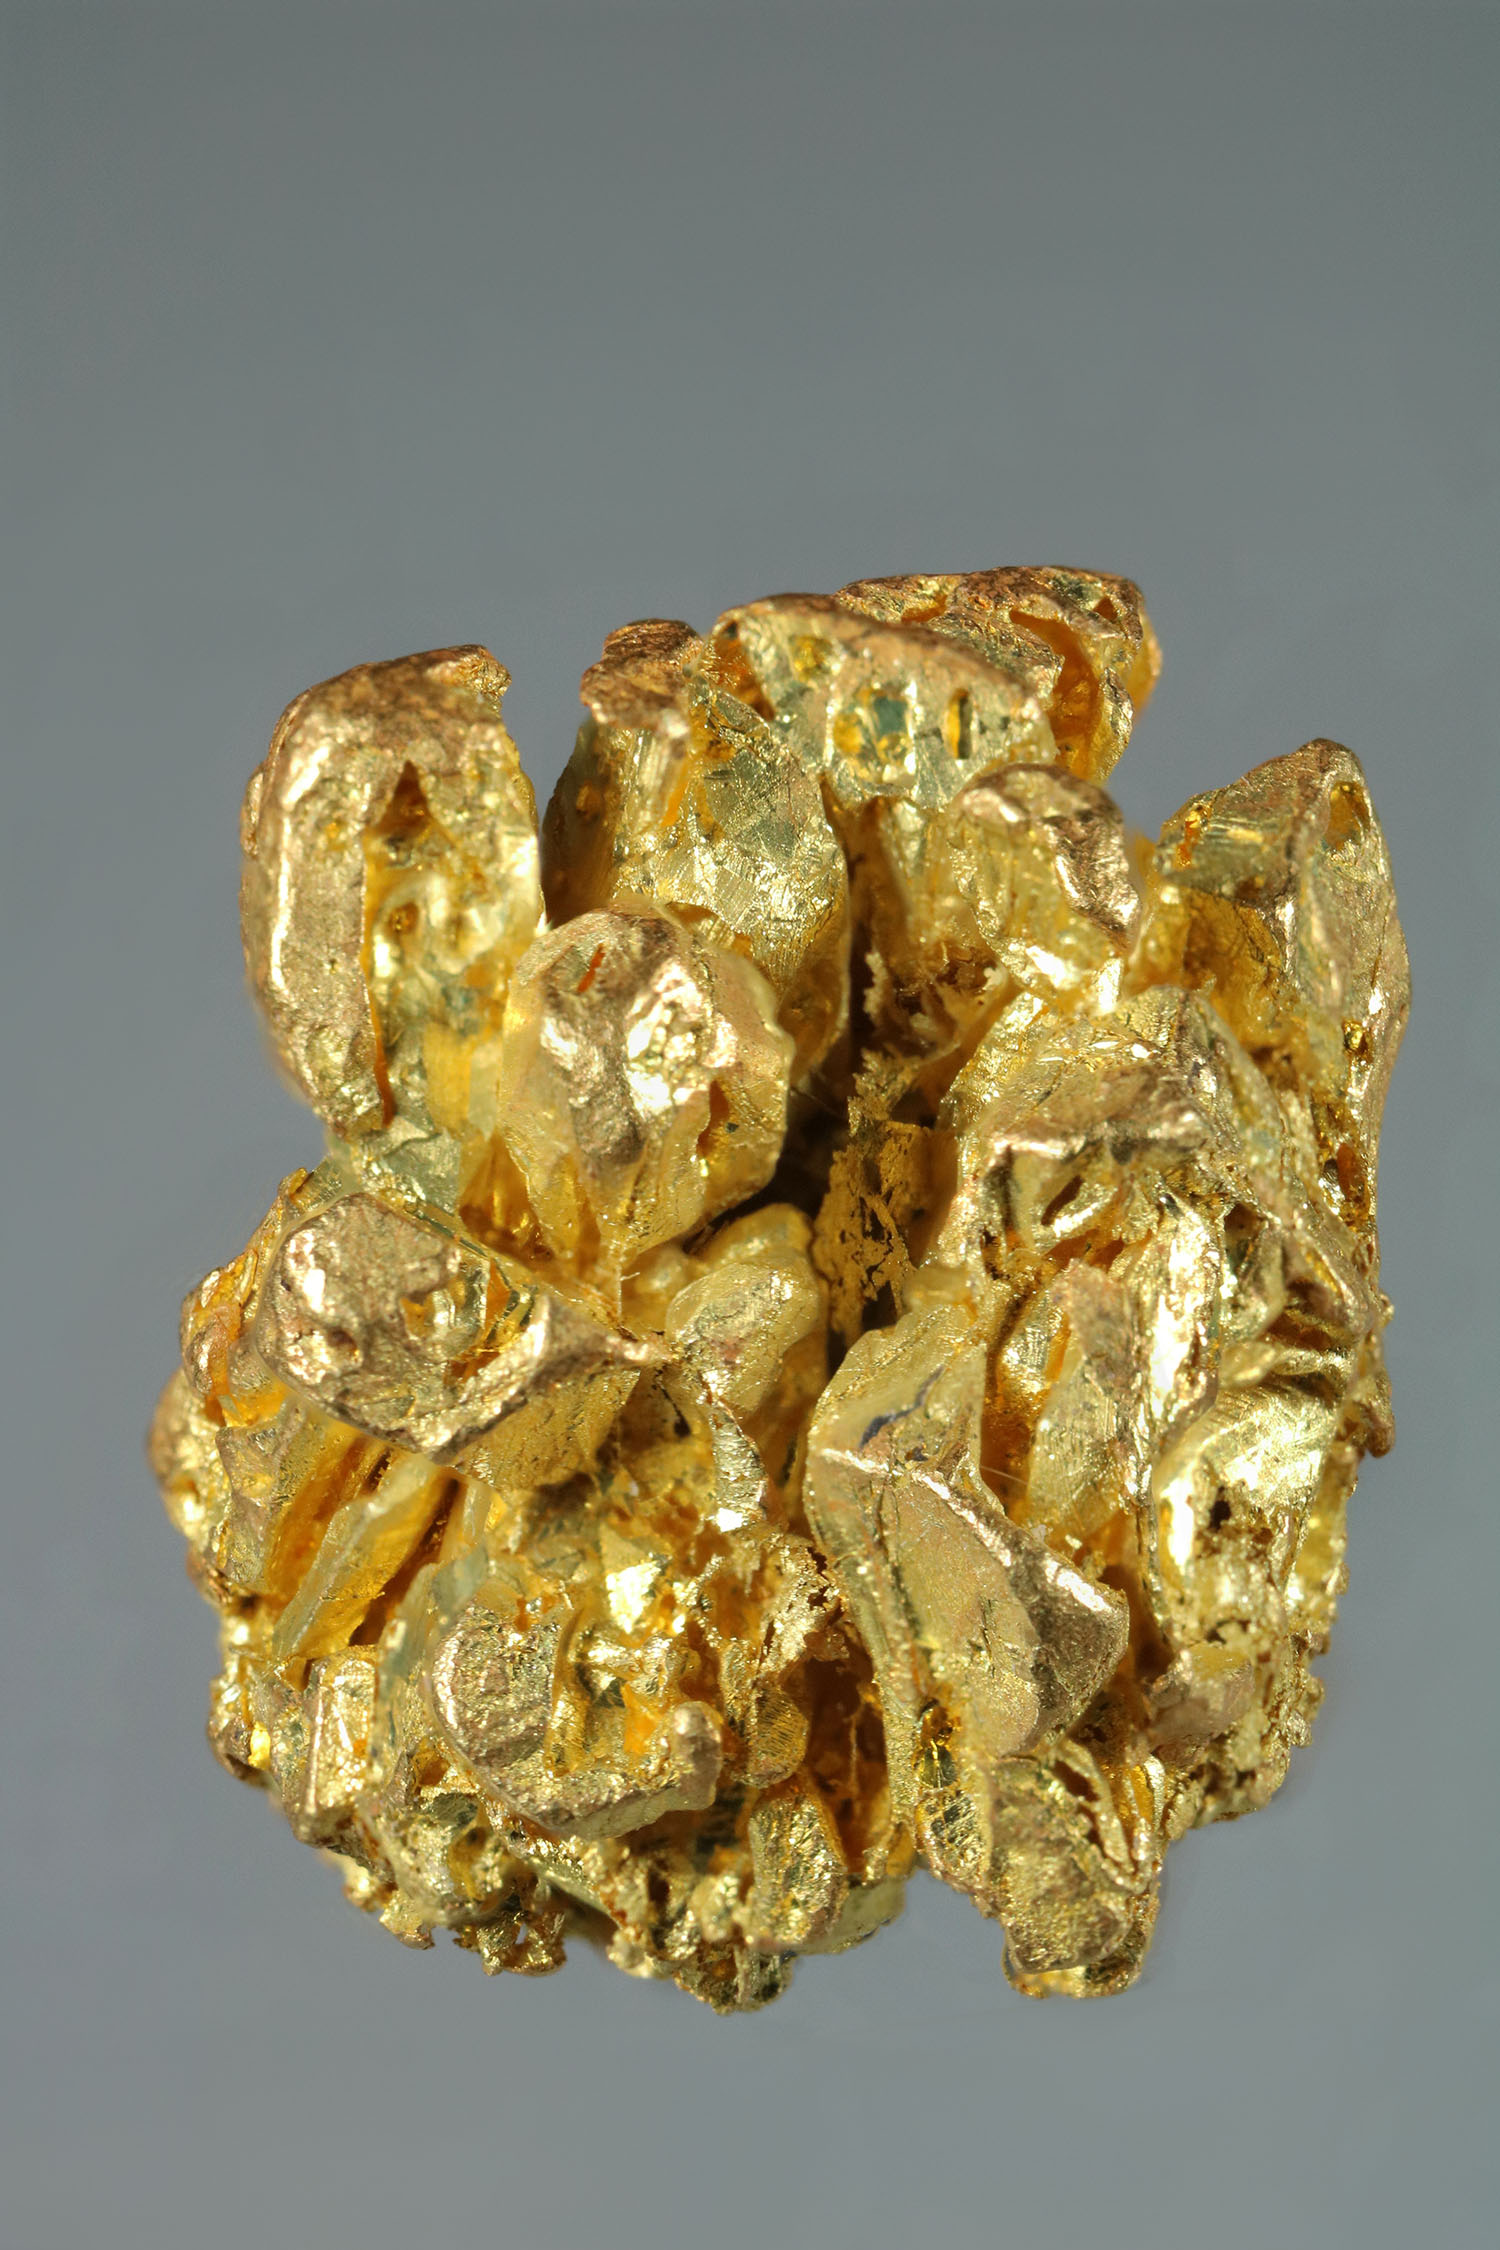 Gold Crystal Cluster Specimen from the Yukon Territory